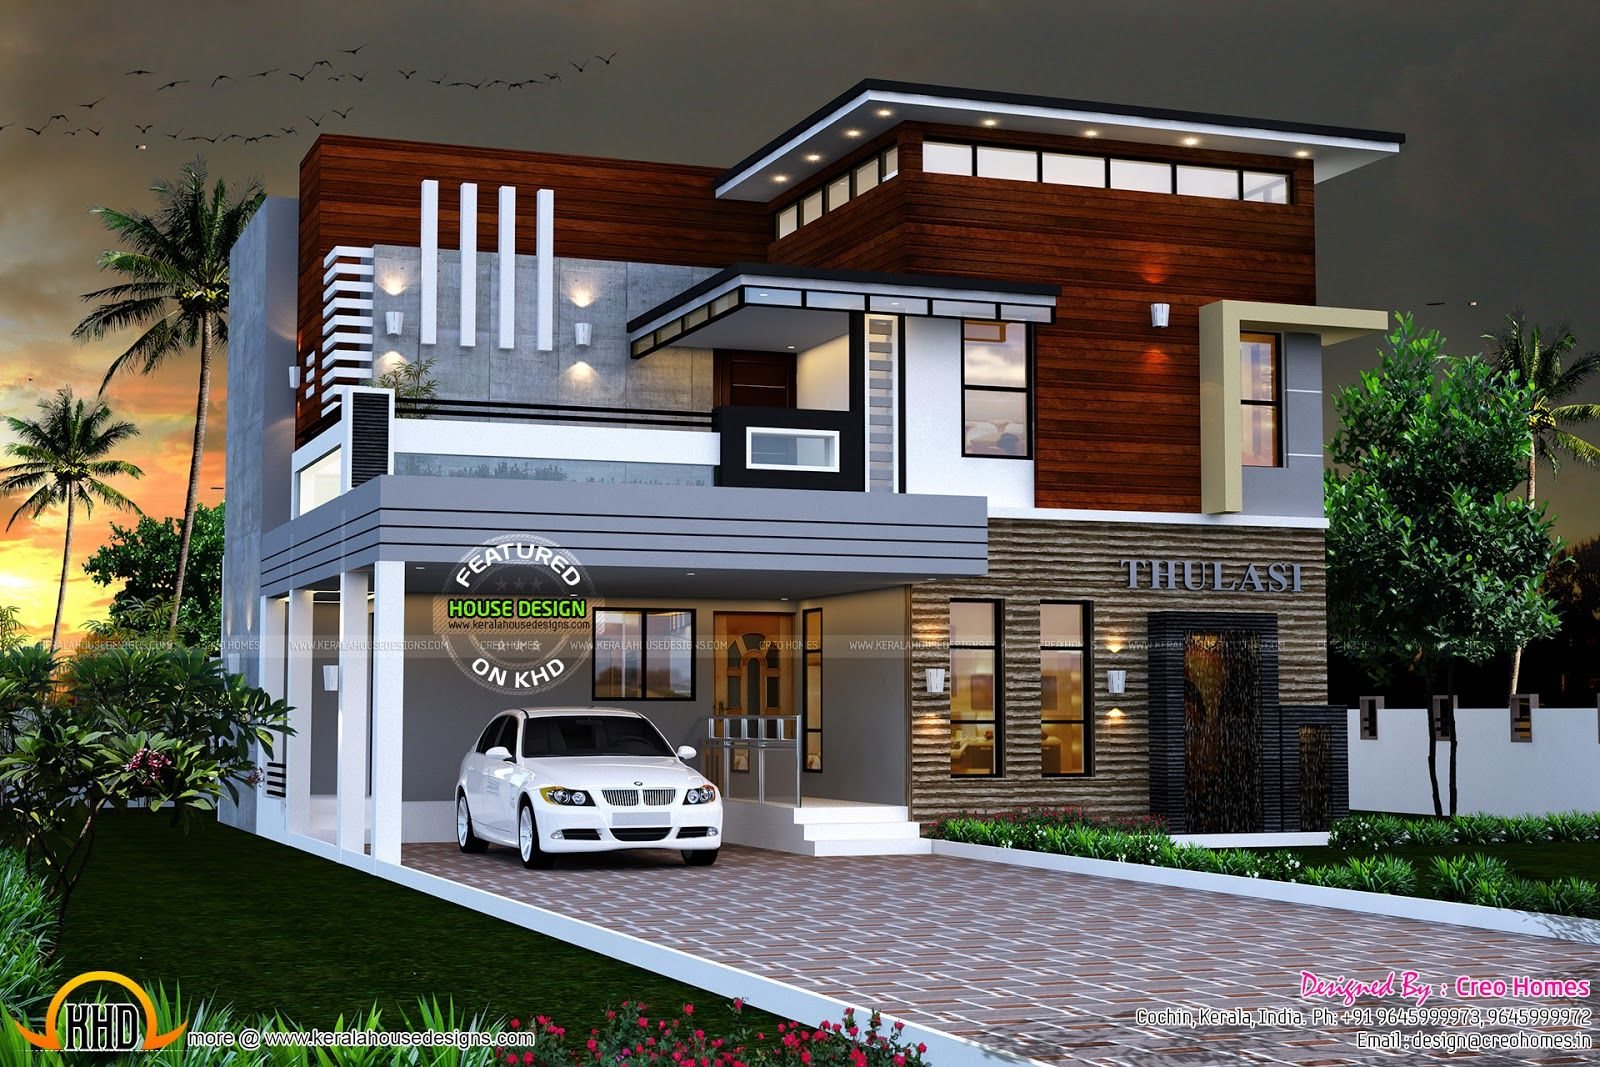 Charming Eterior Design Modern Small House Architecture Building Plan Home Design  Kerala House Plans Home Decorating Ideas Interior Design